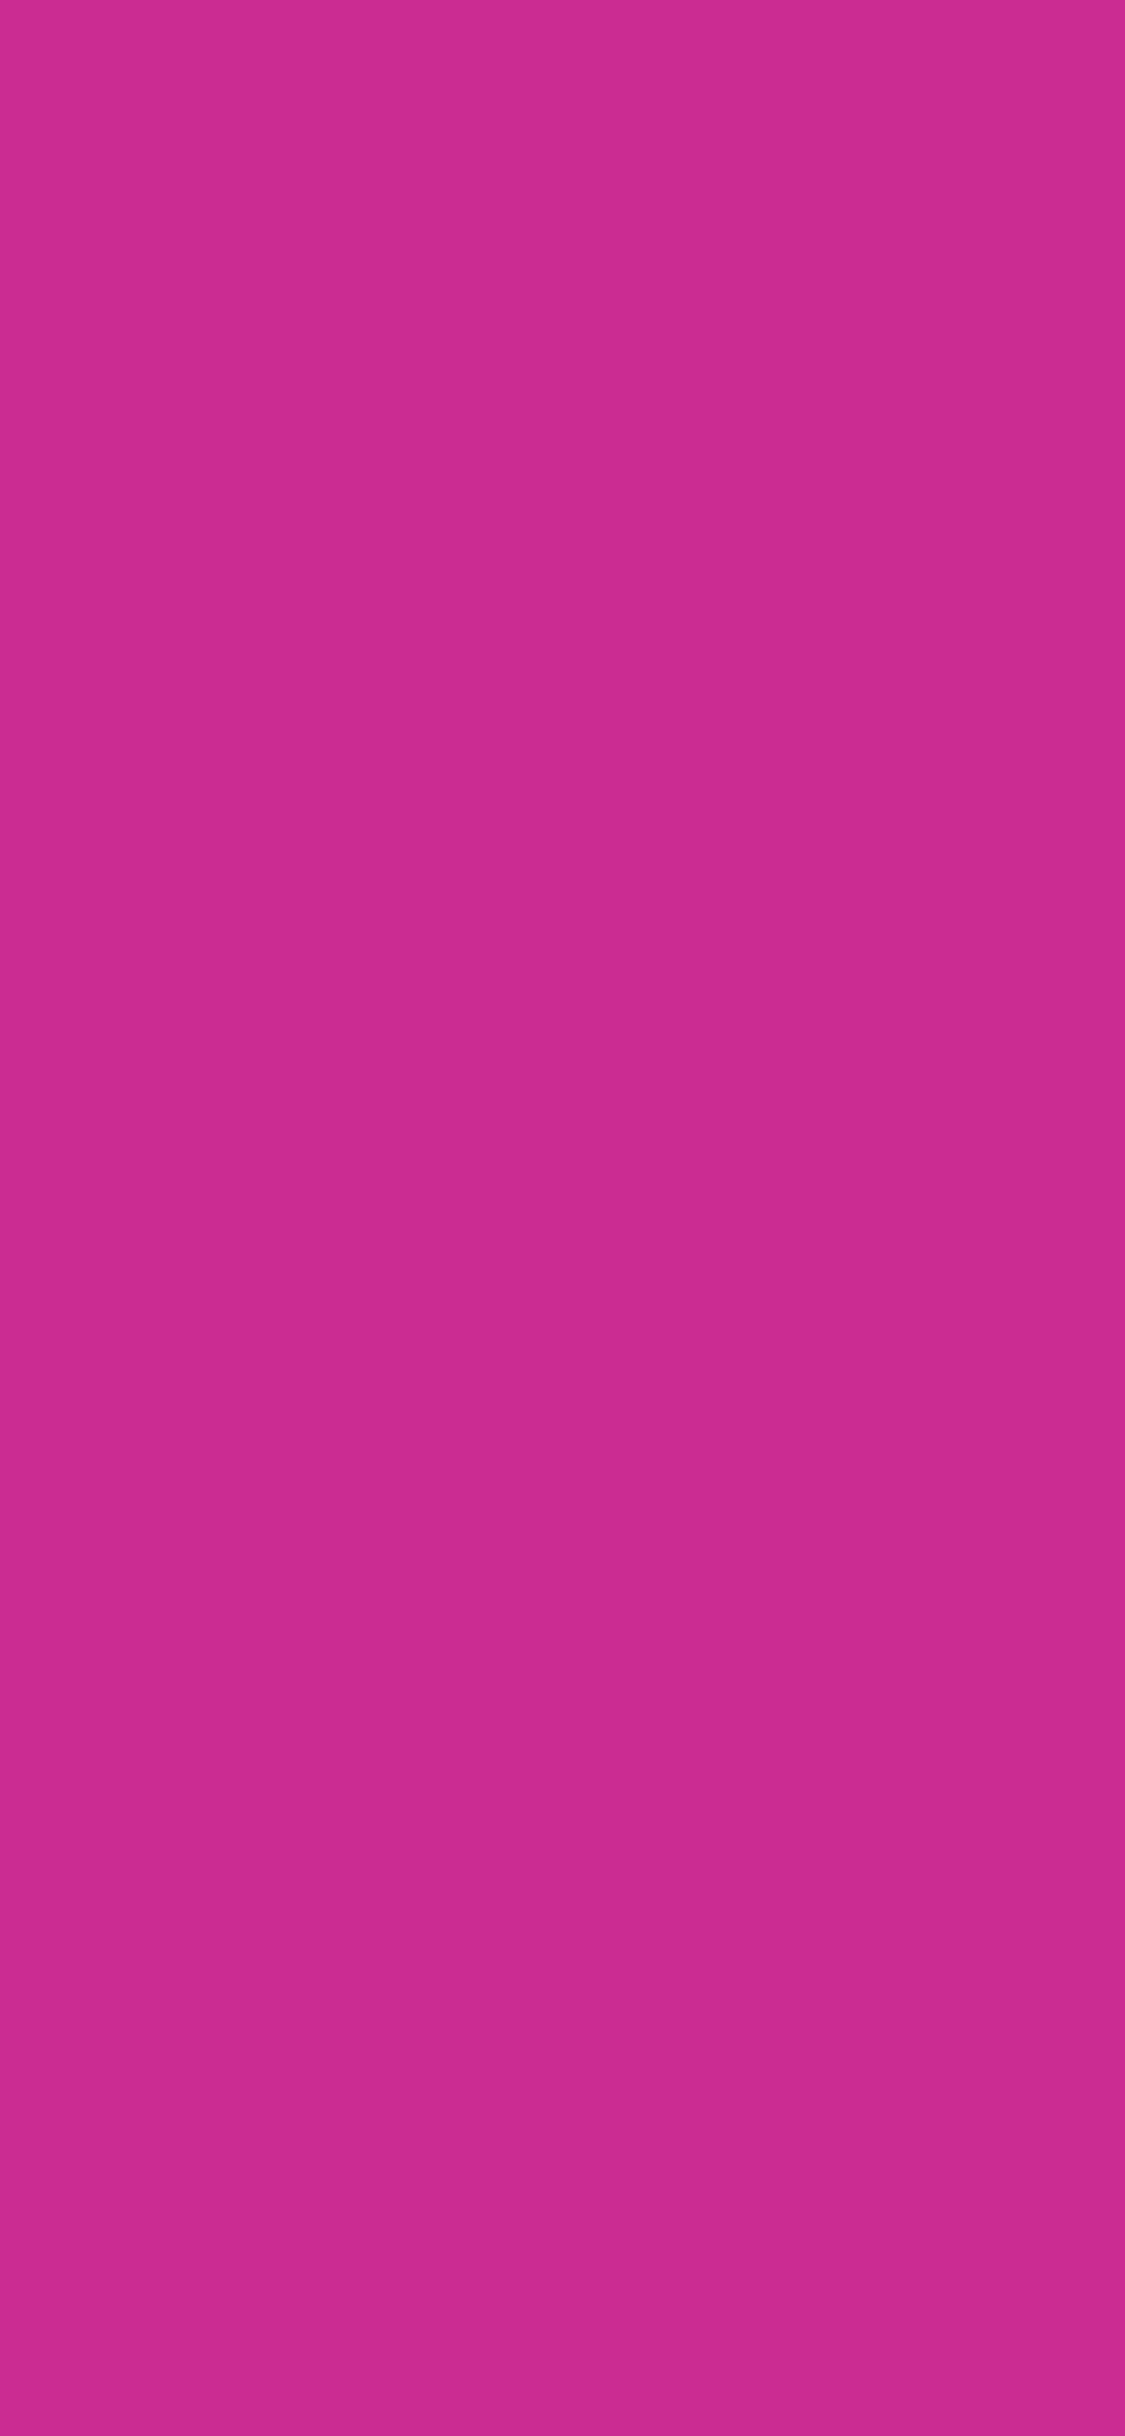 1125x2436 Royal Fuchsia Solid Color Background